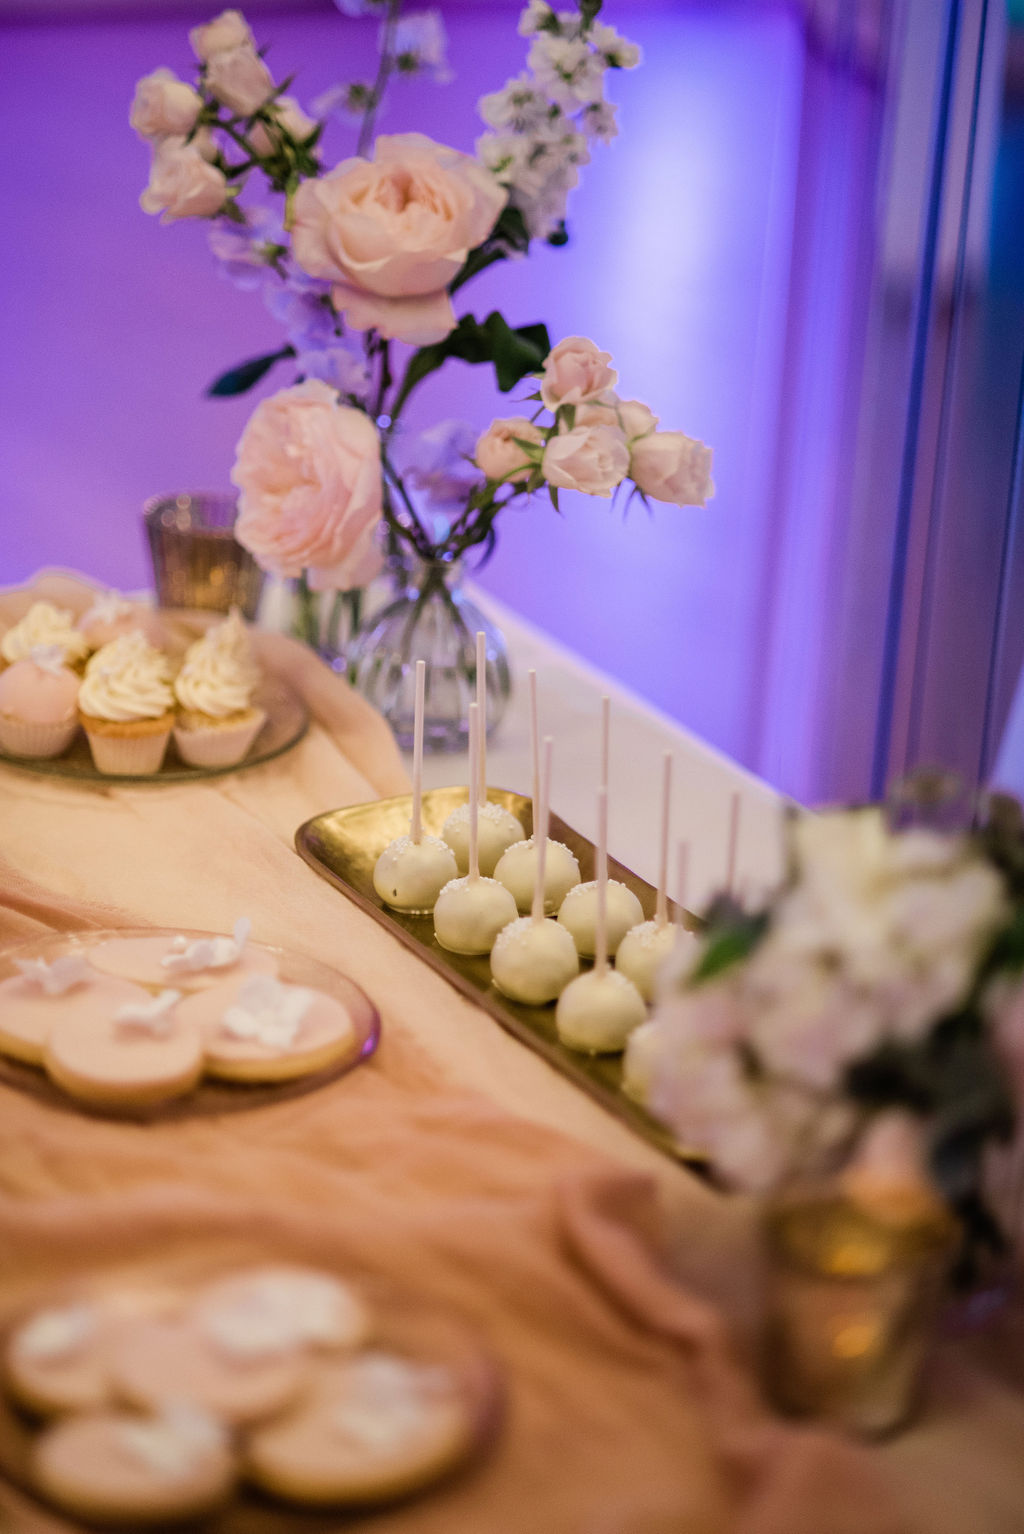 Dessert table at Chiswick House wedding, London | Sugar Plum Bakes